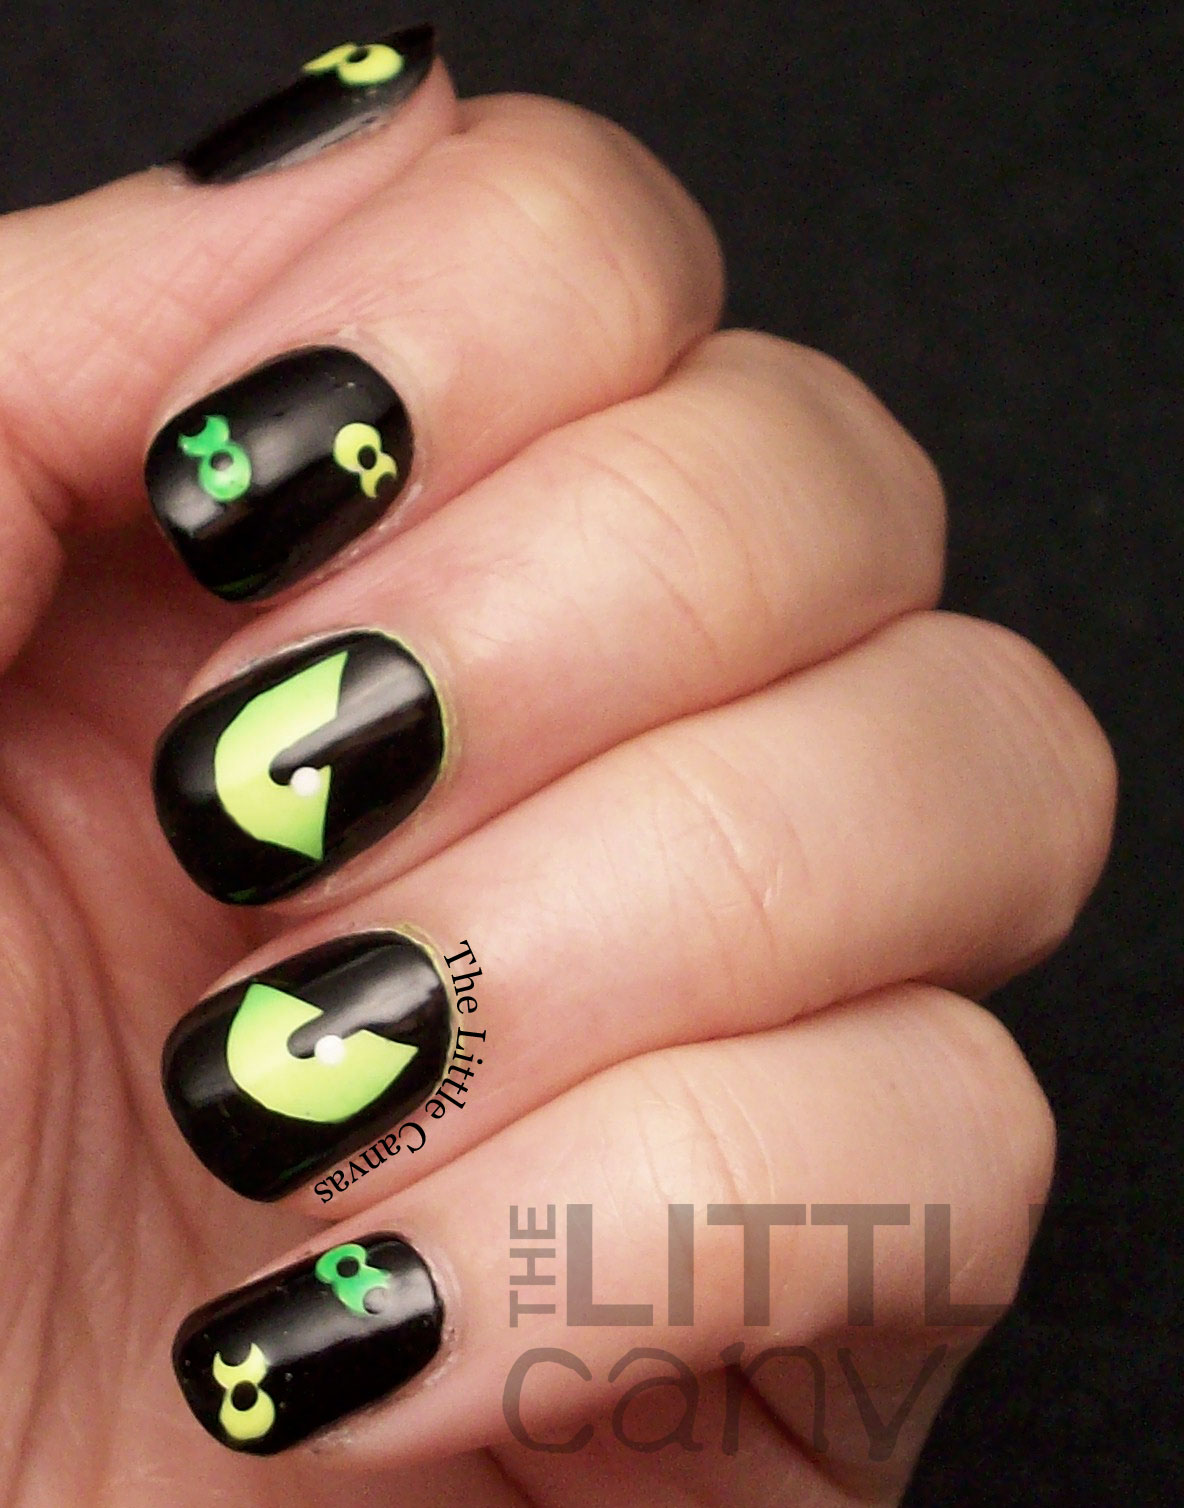 Halloween Eyeball Nail Art: Halloween nail art skulls and eyeball ...